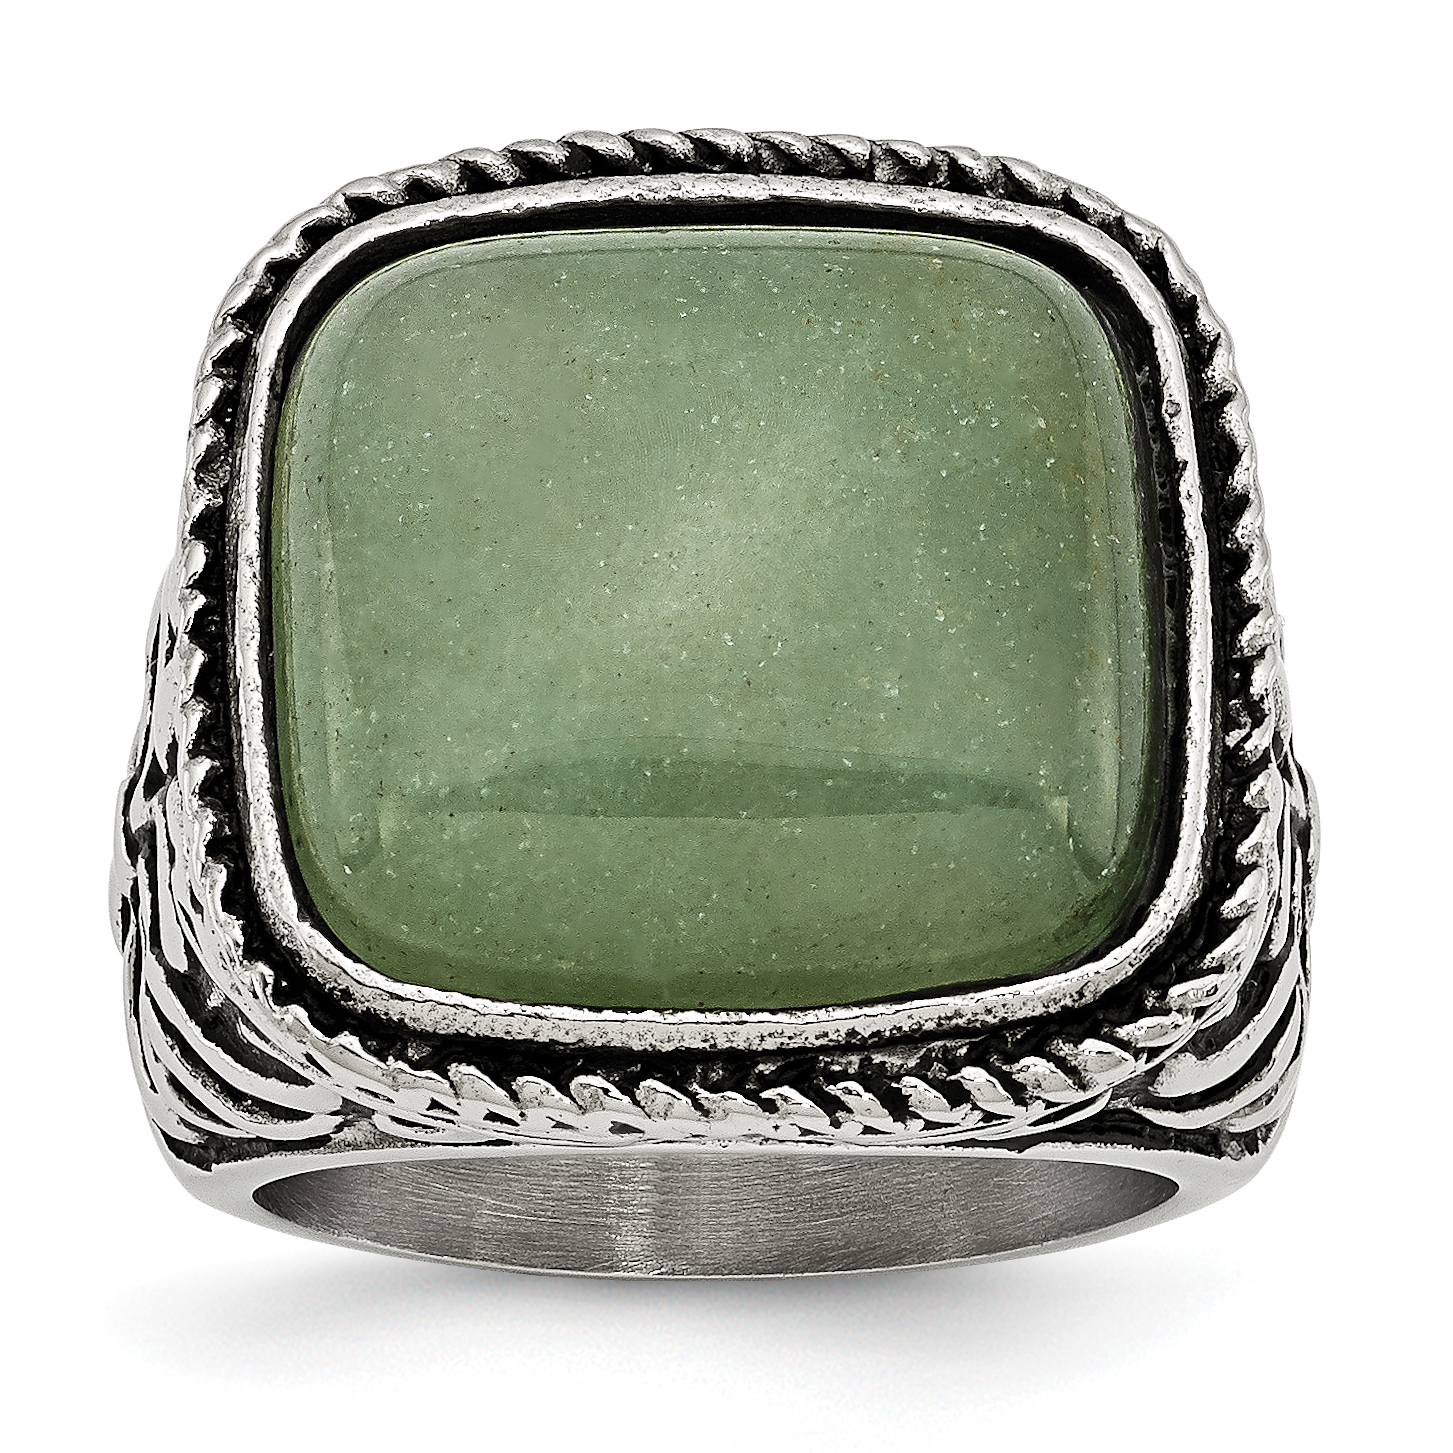 Stainless Steel Antiqued Polished Chalcedony Aventurine Ring SR387 by Chisel